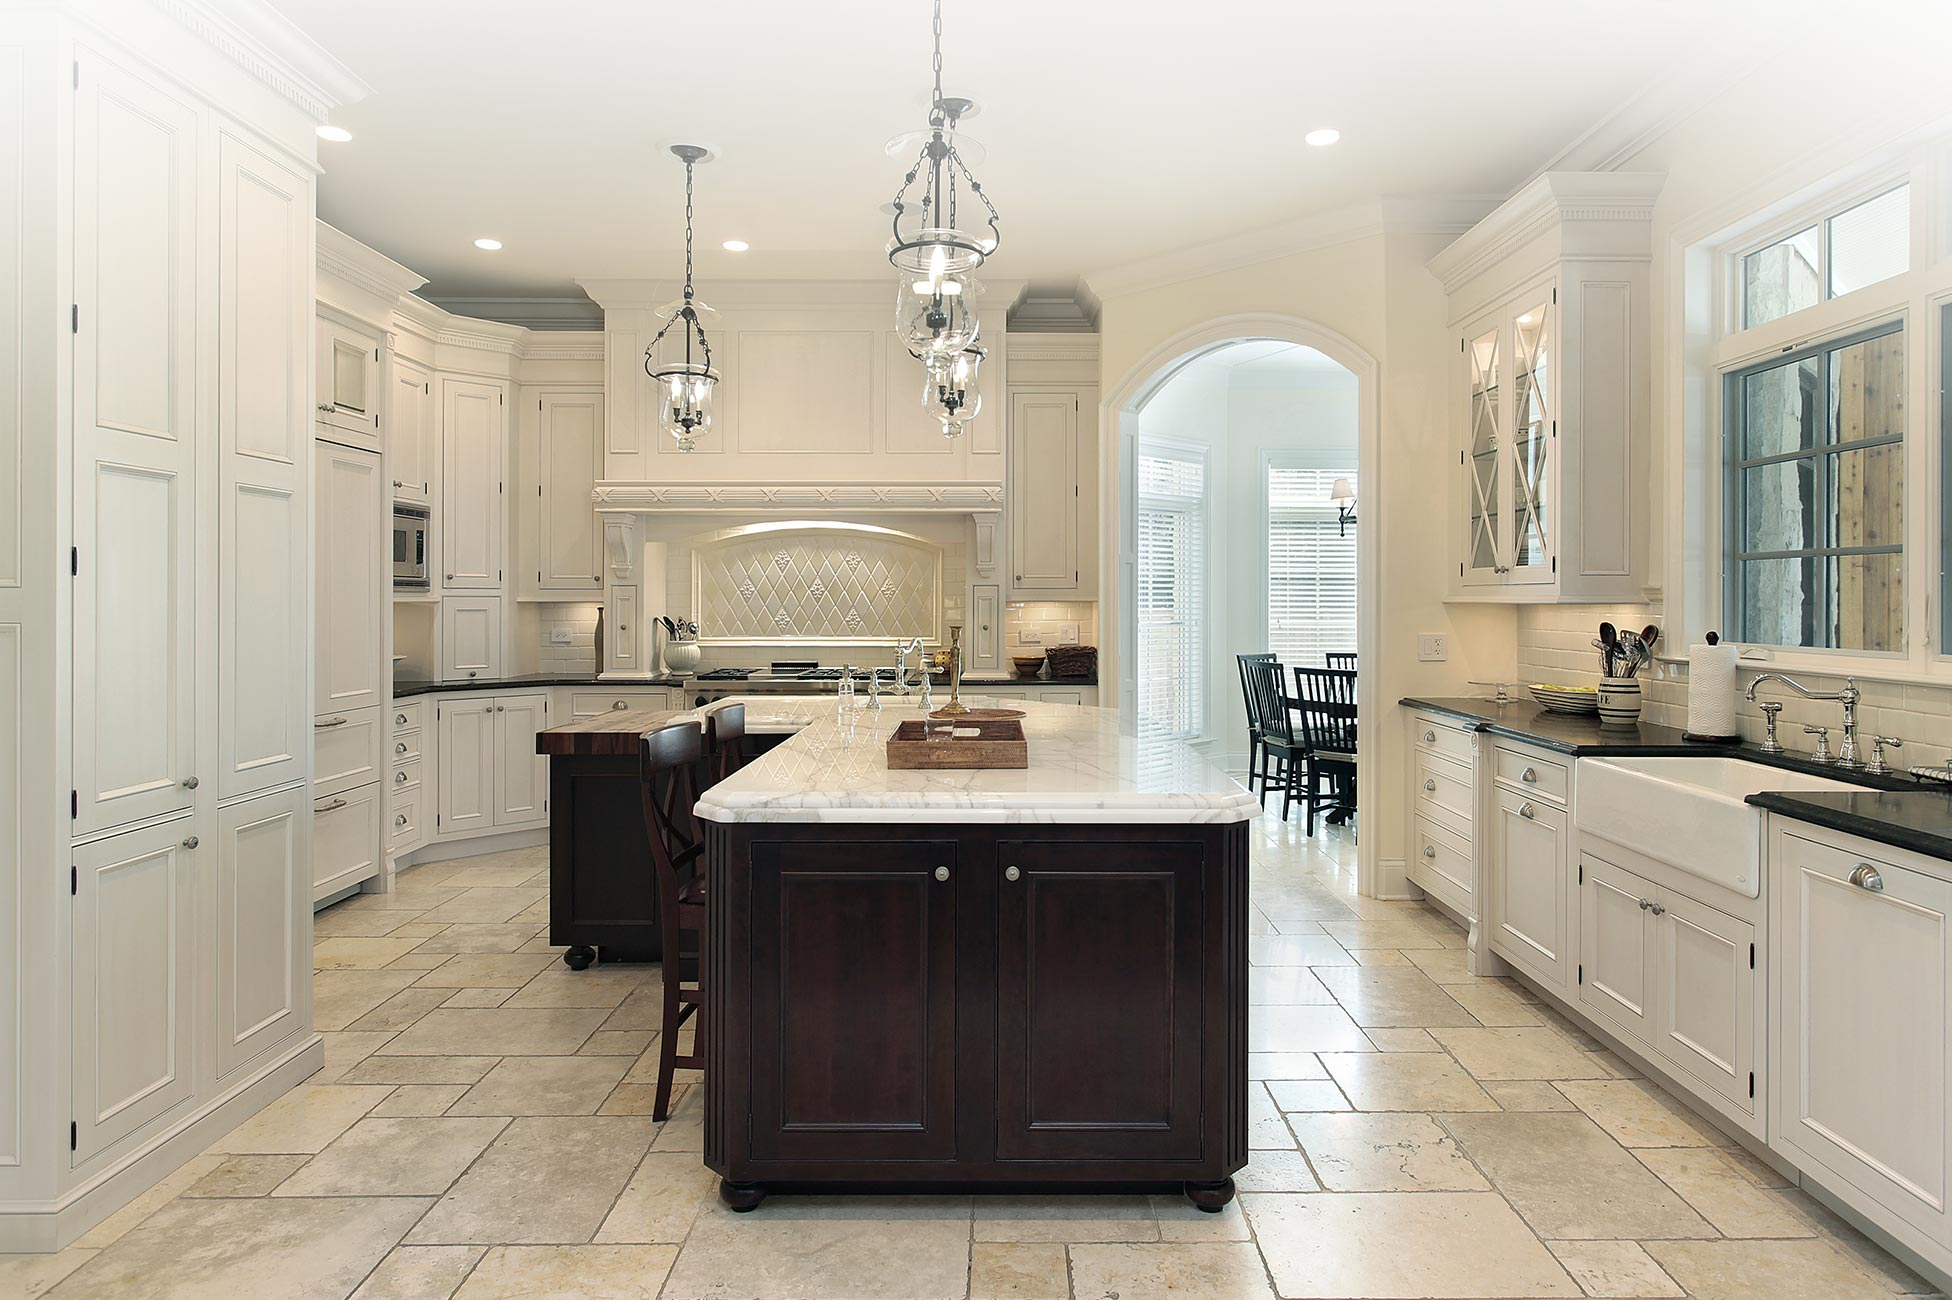 An Elegant Kitchen With Functionality